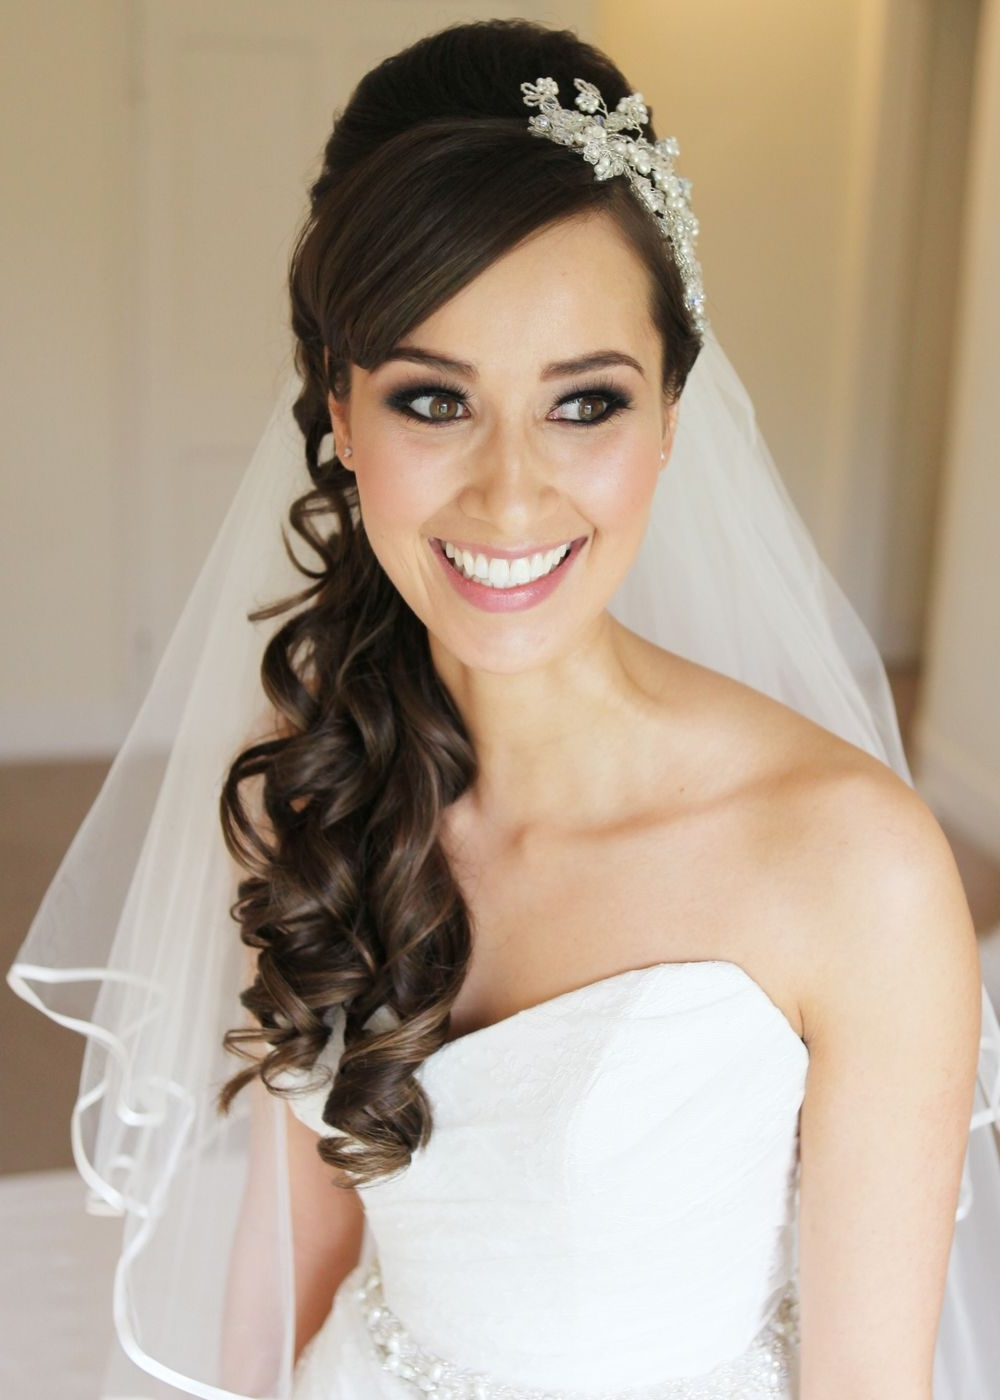 15 Fabulous Half Up Half Down Wedding Hairstyles (View 12 of 15)